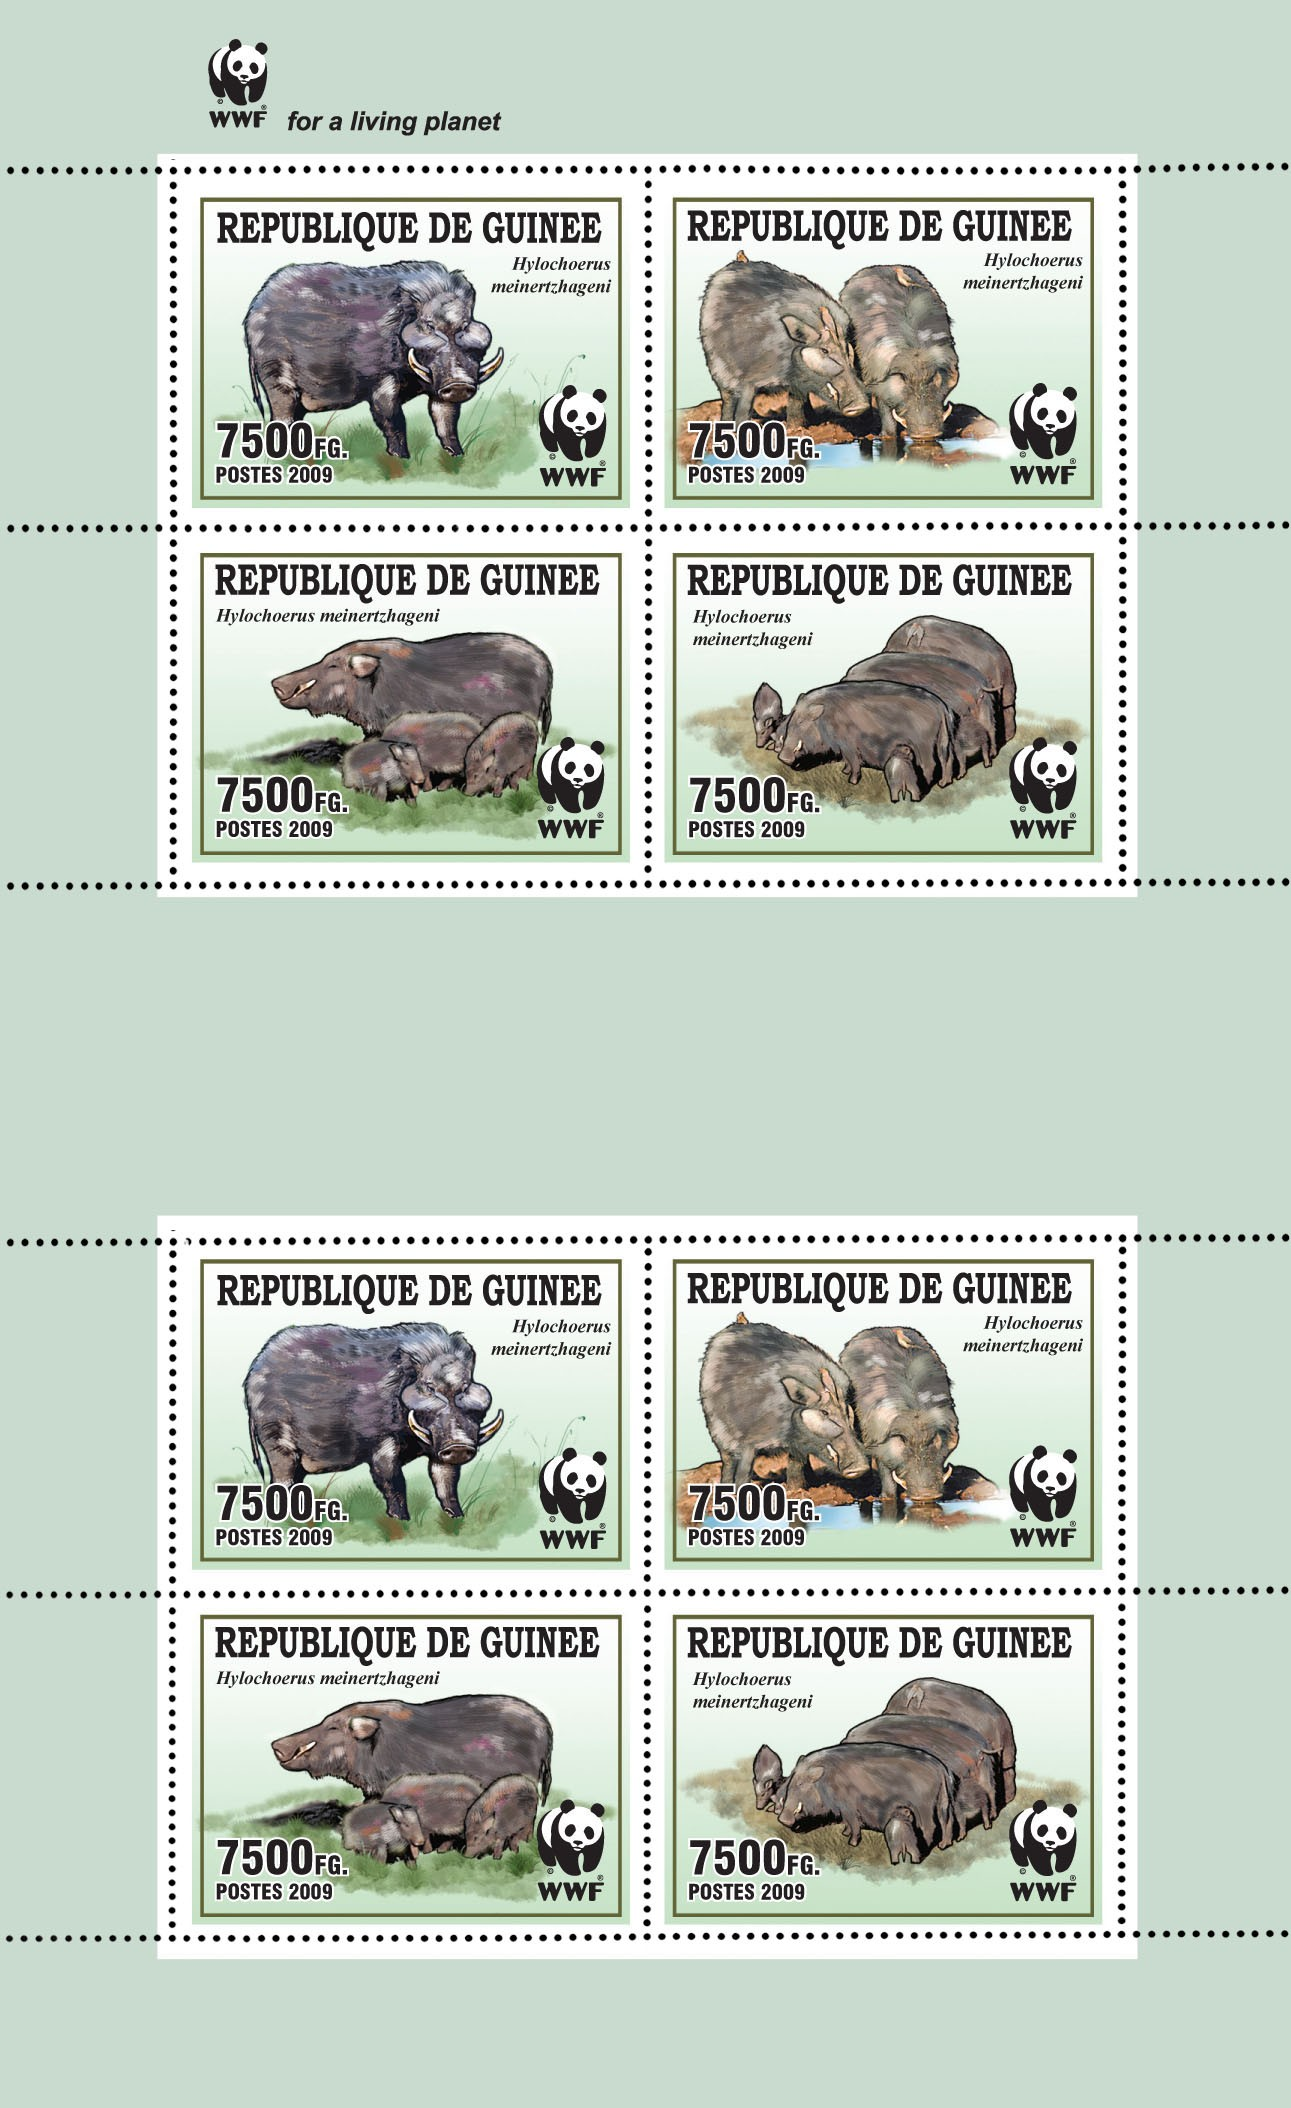 Wild boar / WWF Sheet of 2 sets 8v x 7500 FG - Issue of Guinée postage stamps